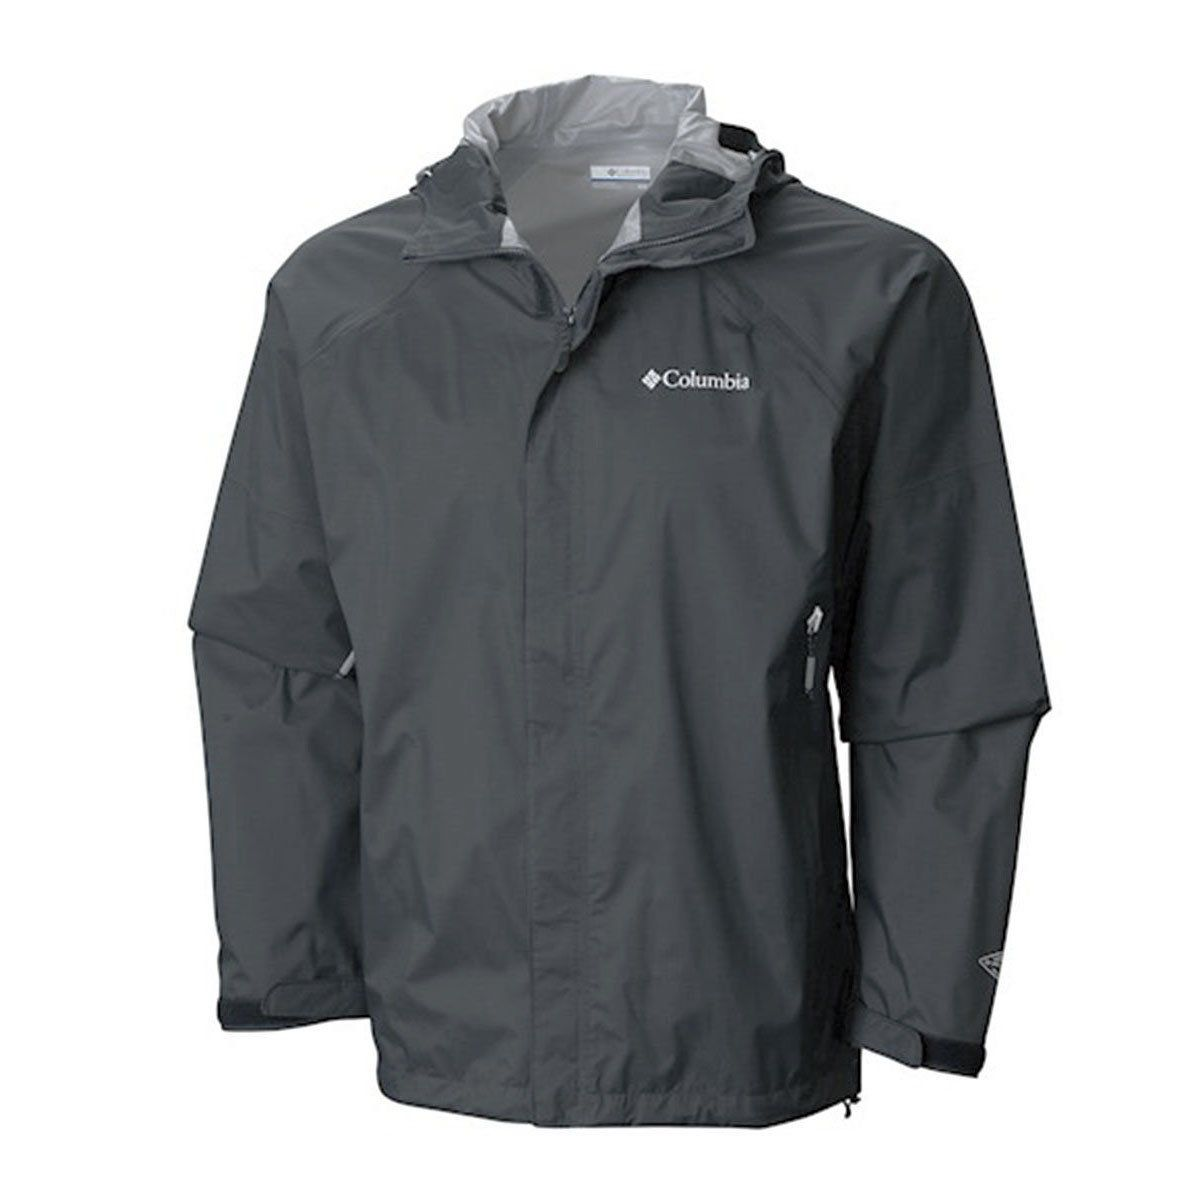 Jaqueta Columbia Sleeker Jacket Graphite